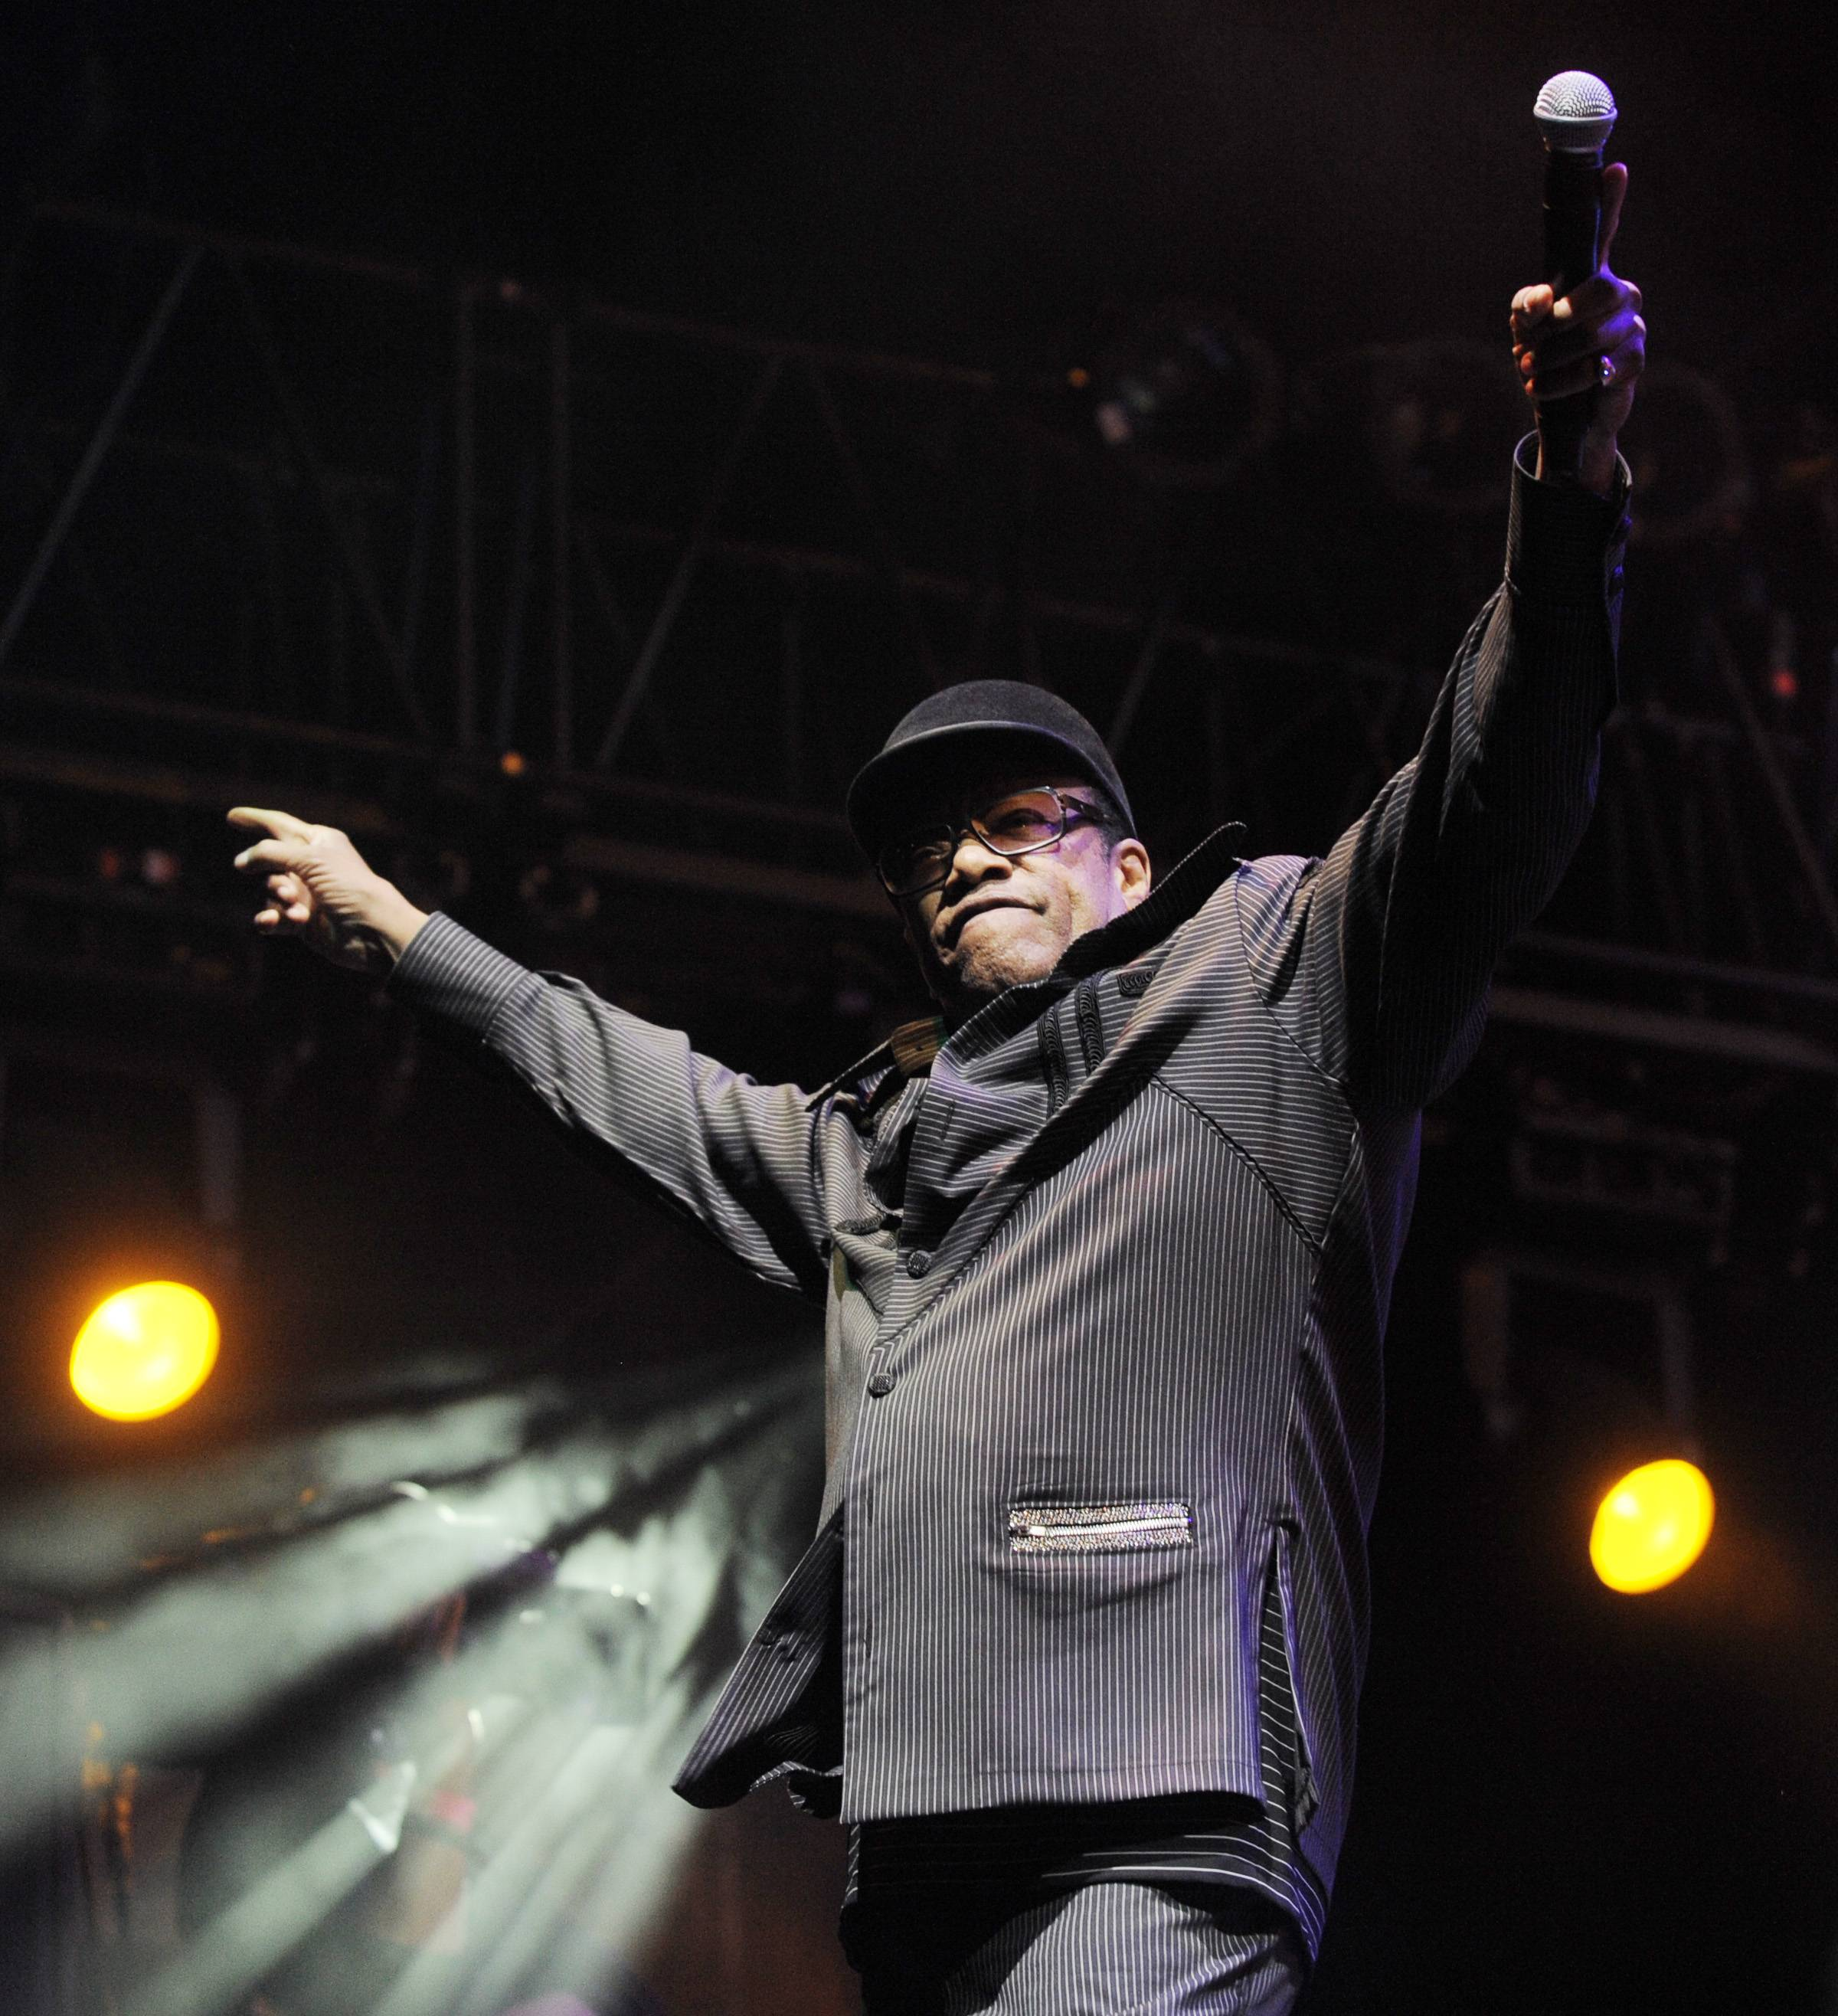 Singer Bobby Womack, shown here performing with Gorillaz at Coachella Valley Music and Arts Festival in 2010, has died. Womack's publicist Sonya Kolowrat confirmed to The Associated Press on Friday, June 27, 2014, that the singer died but had no other details to provide.